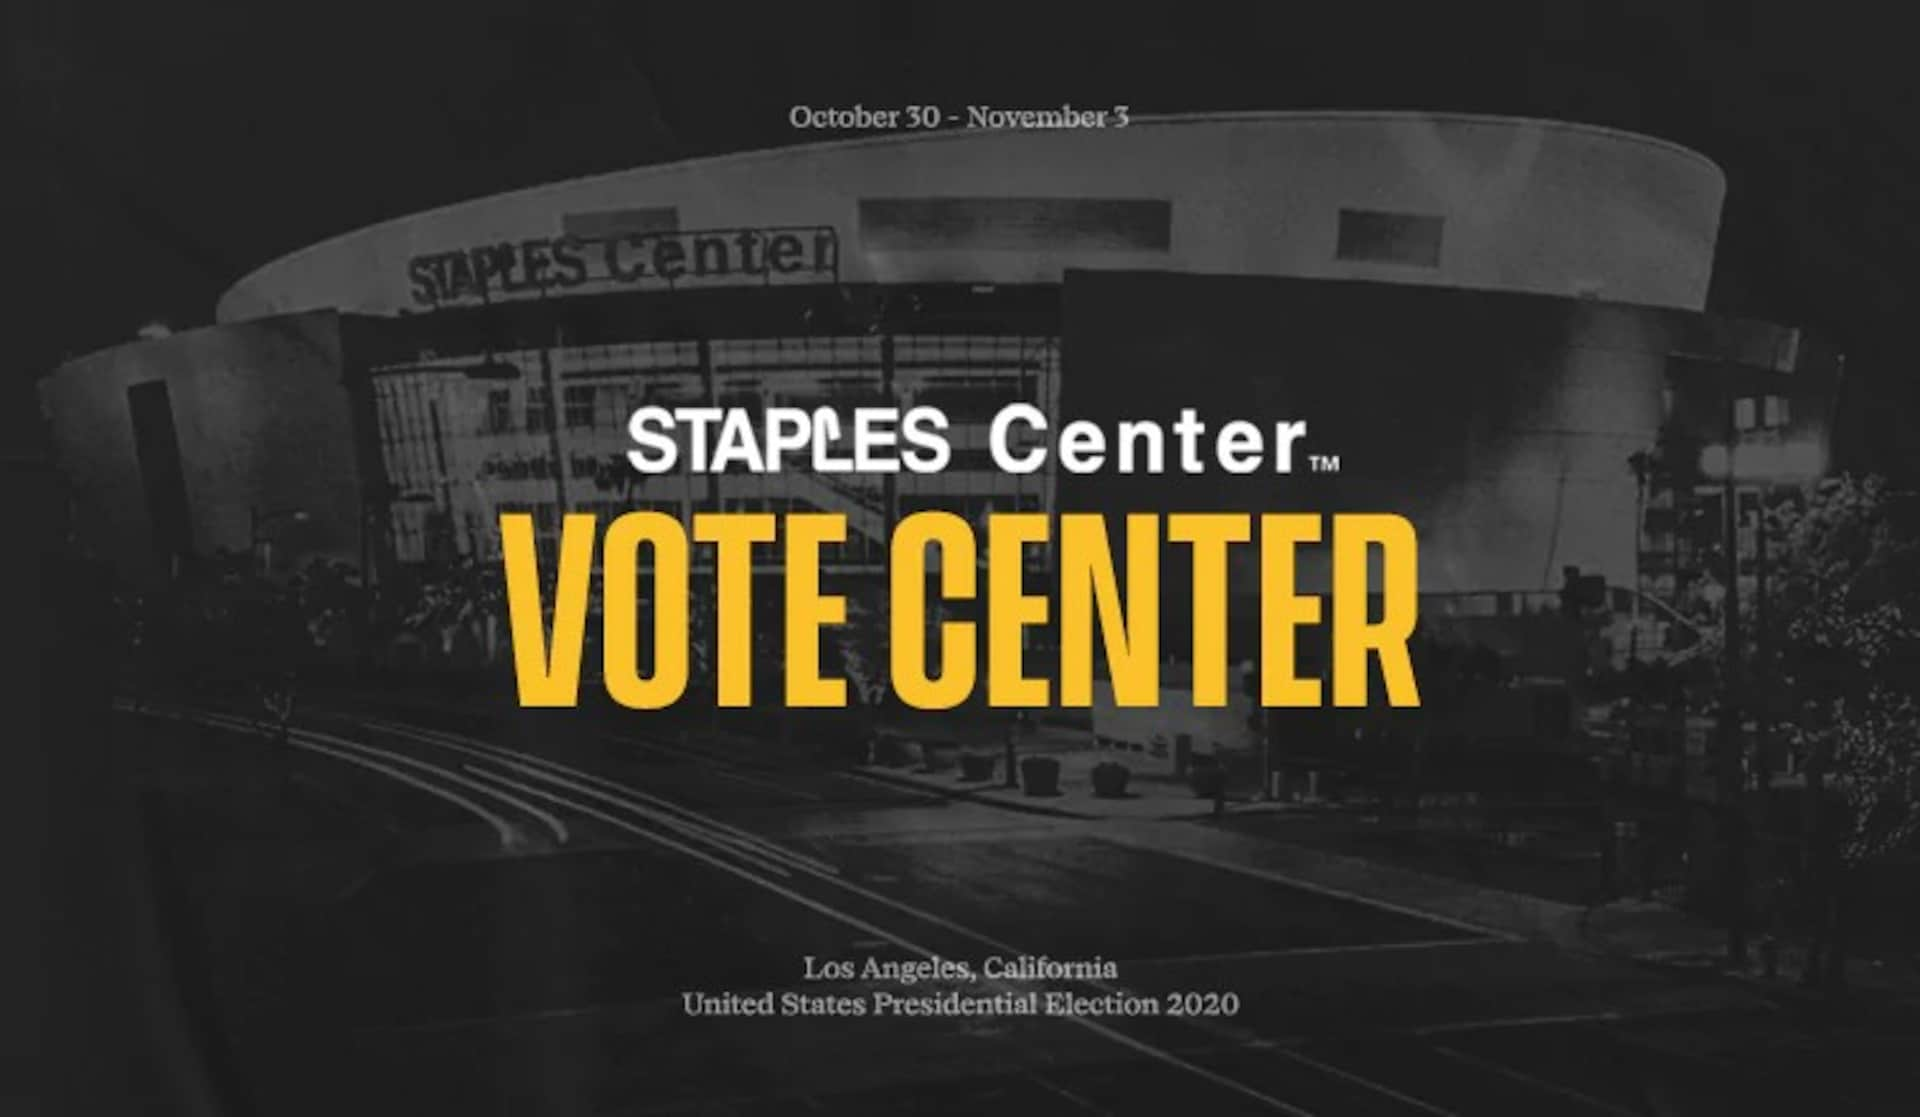 Staples Center to serve as General Election Vote Center